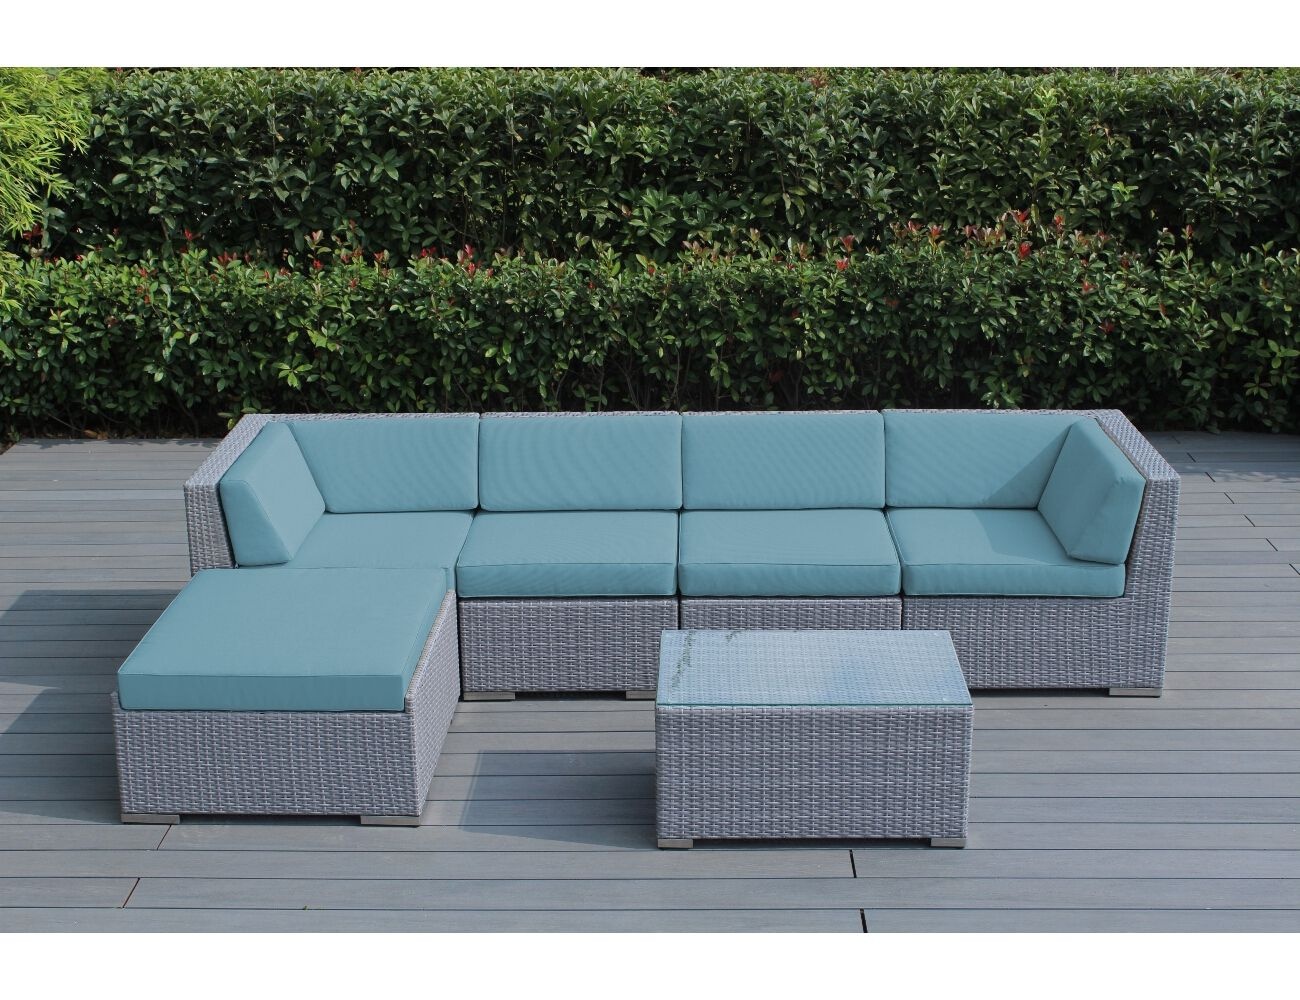 sunbrella mineral blue with gray wicker ohana deep seating set rh pinterest com